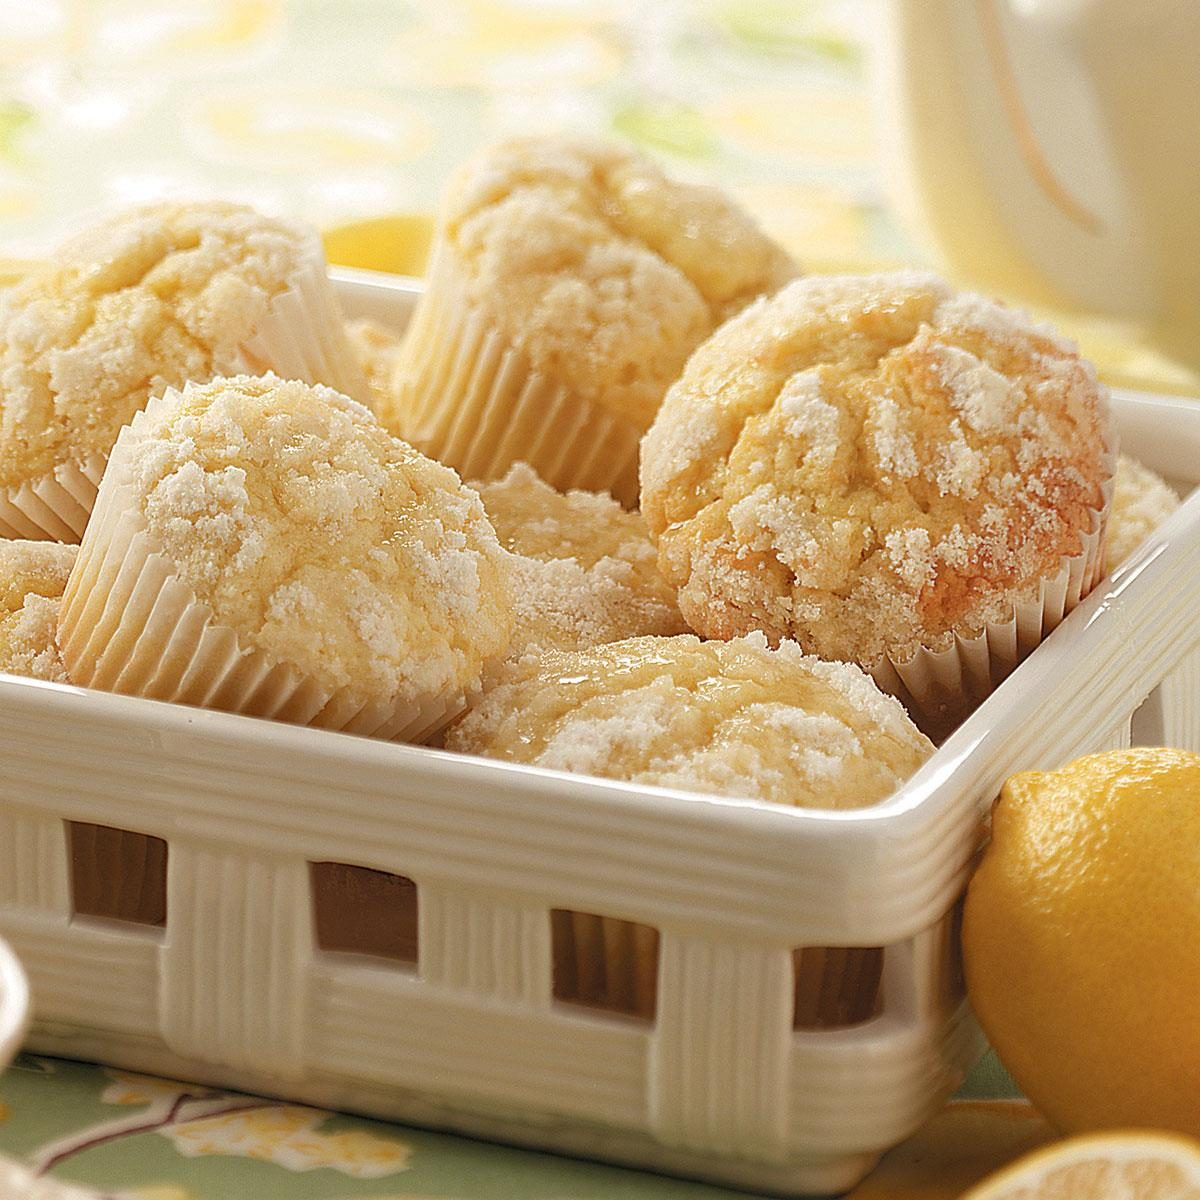 This Lemon Crumb Muffin Recipe Will Brighten Up Your Morning | Taste ...